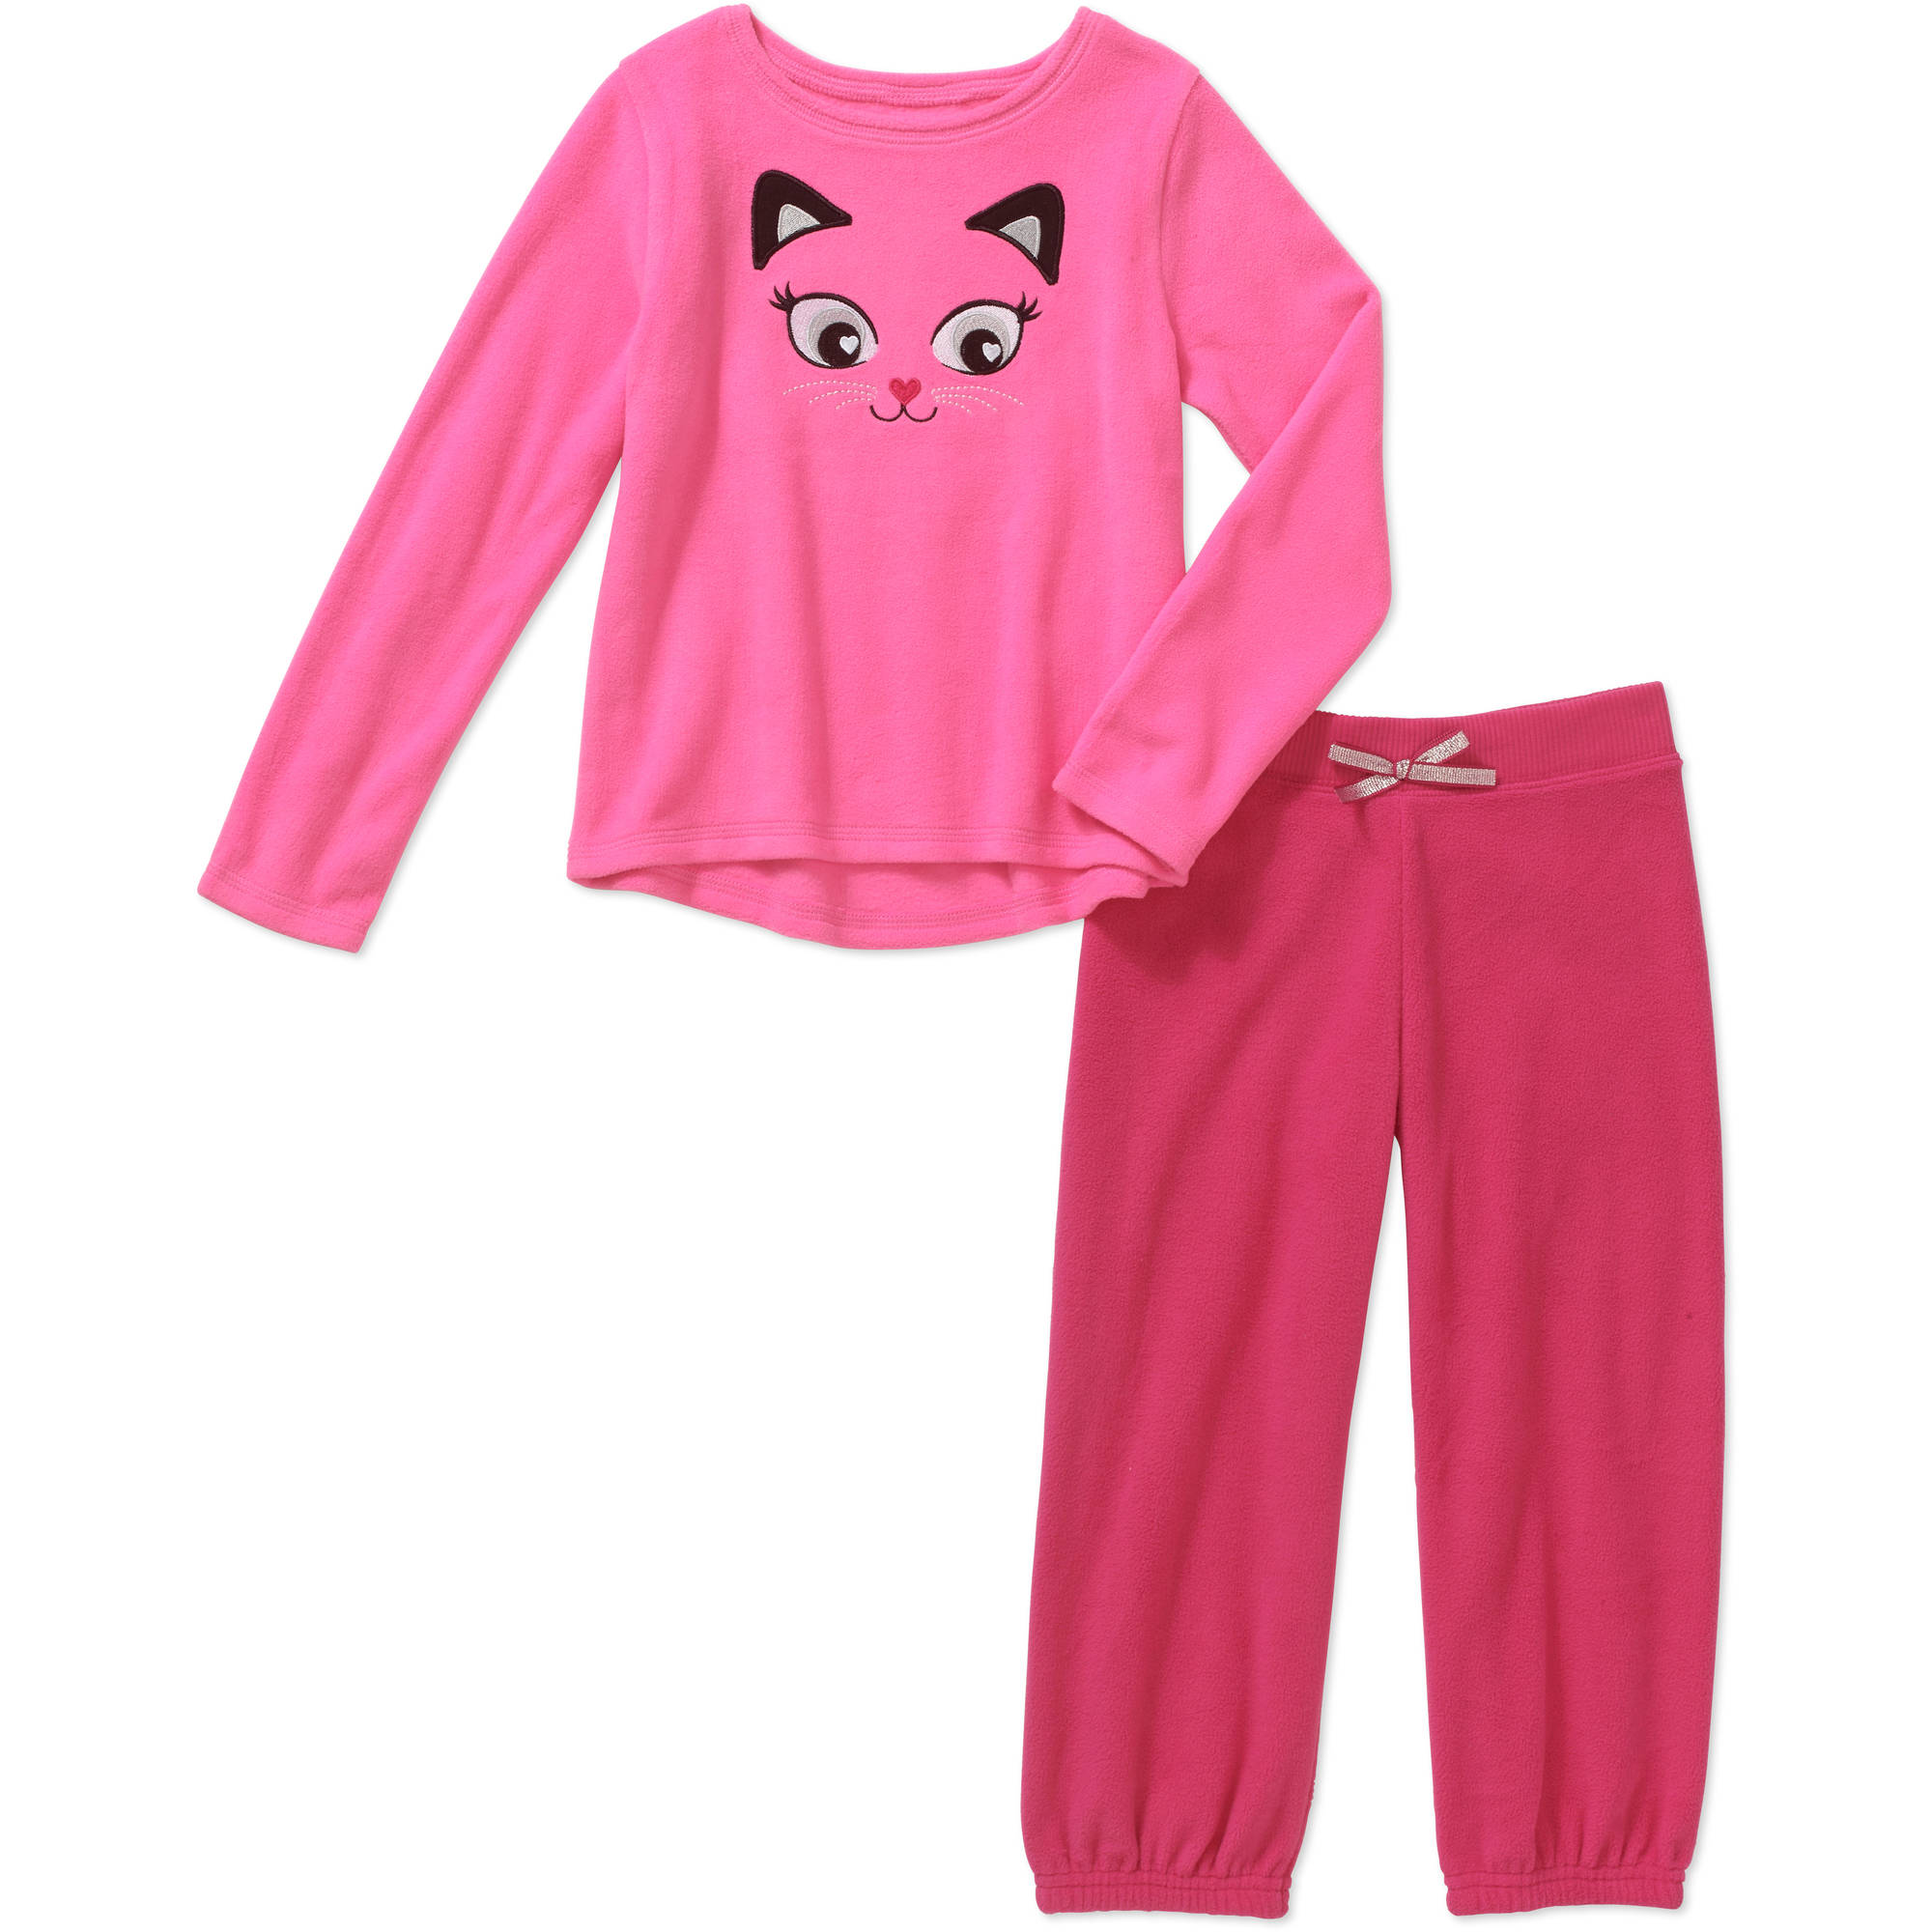 365 Kids from Garanimals Girls' Long Sleeve Applique Polar Fleece Top and Polar Fleece Pant Outfit Set